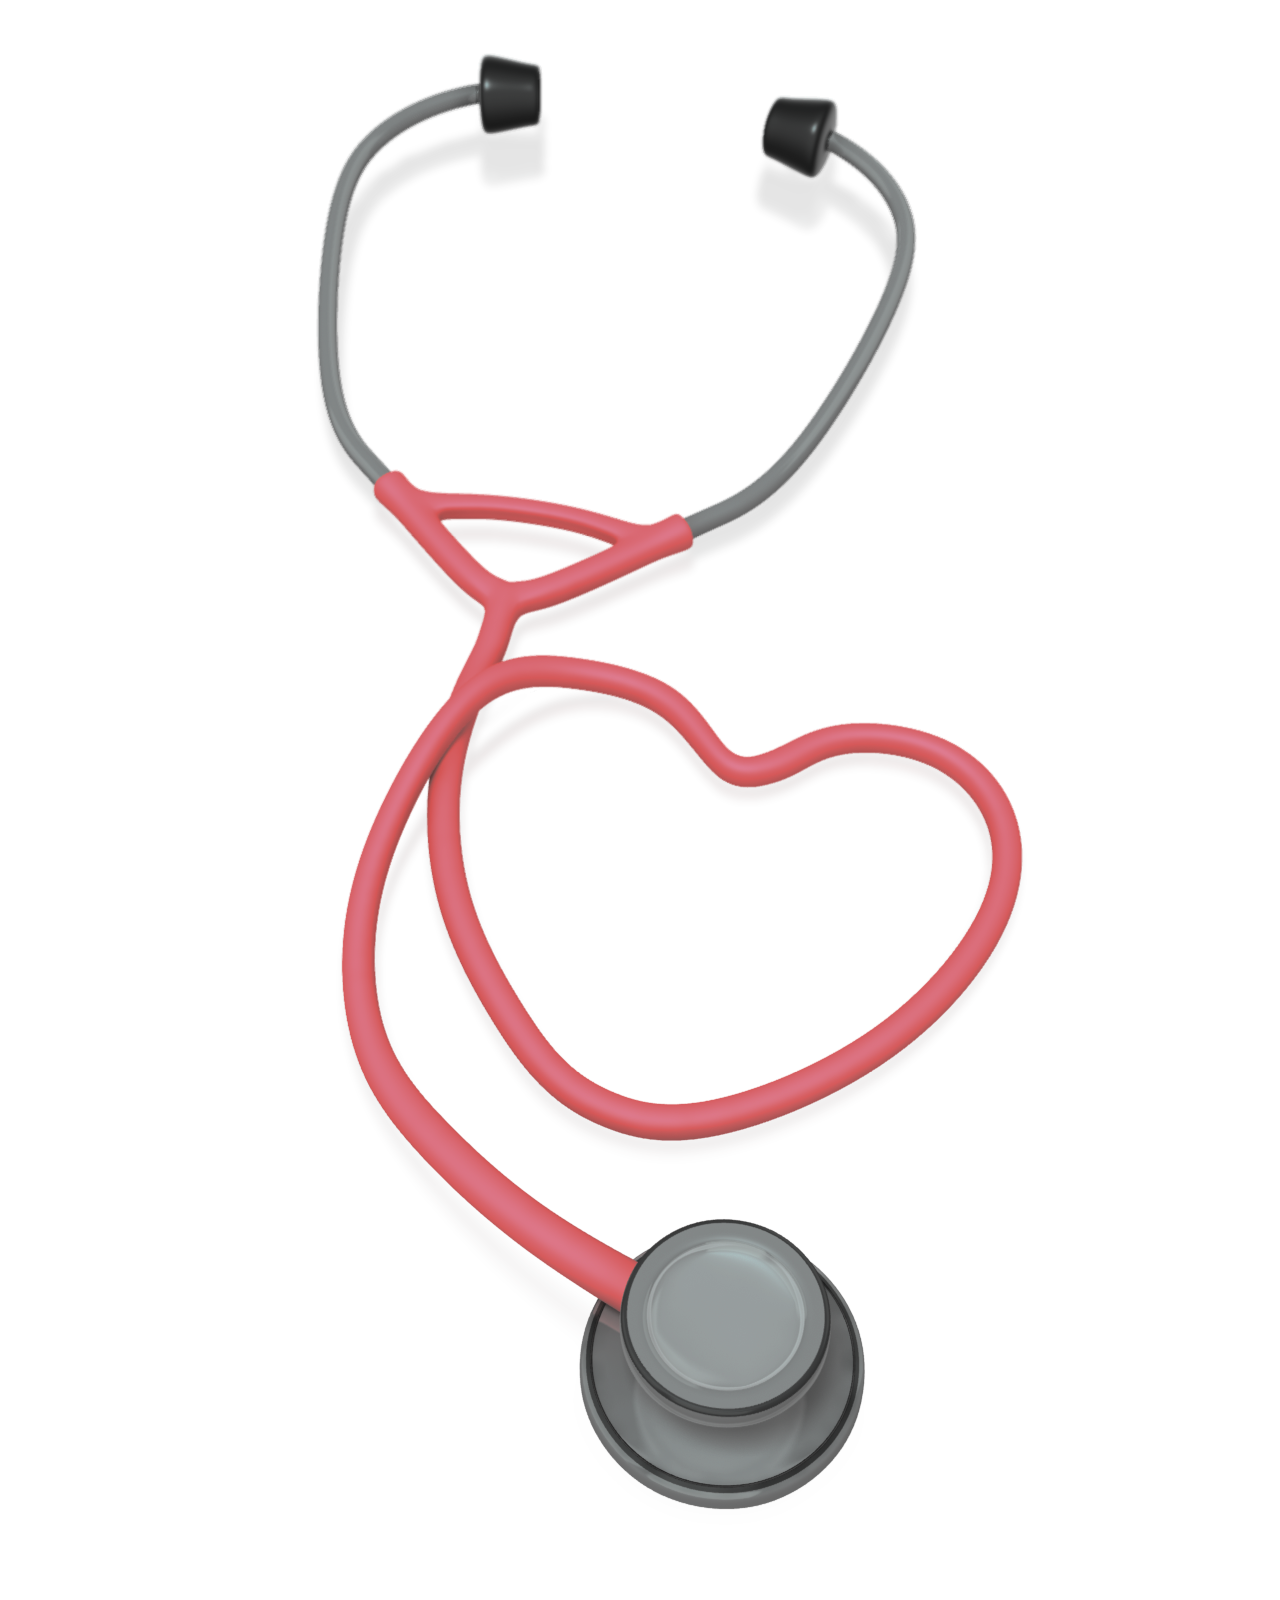 Stethoscope png transparent. Heart pictures free icons